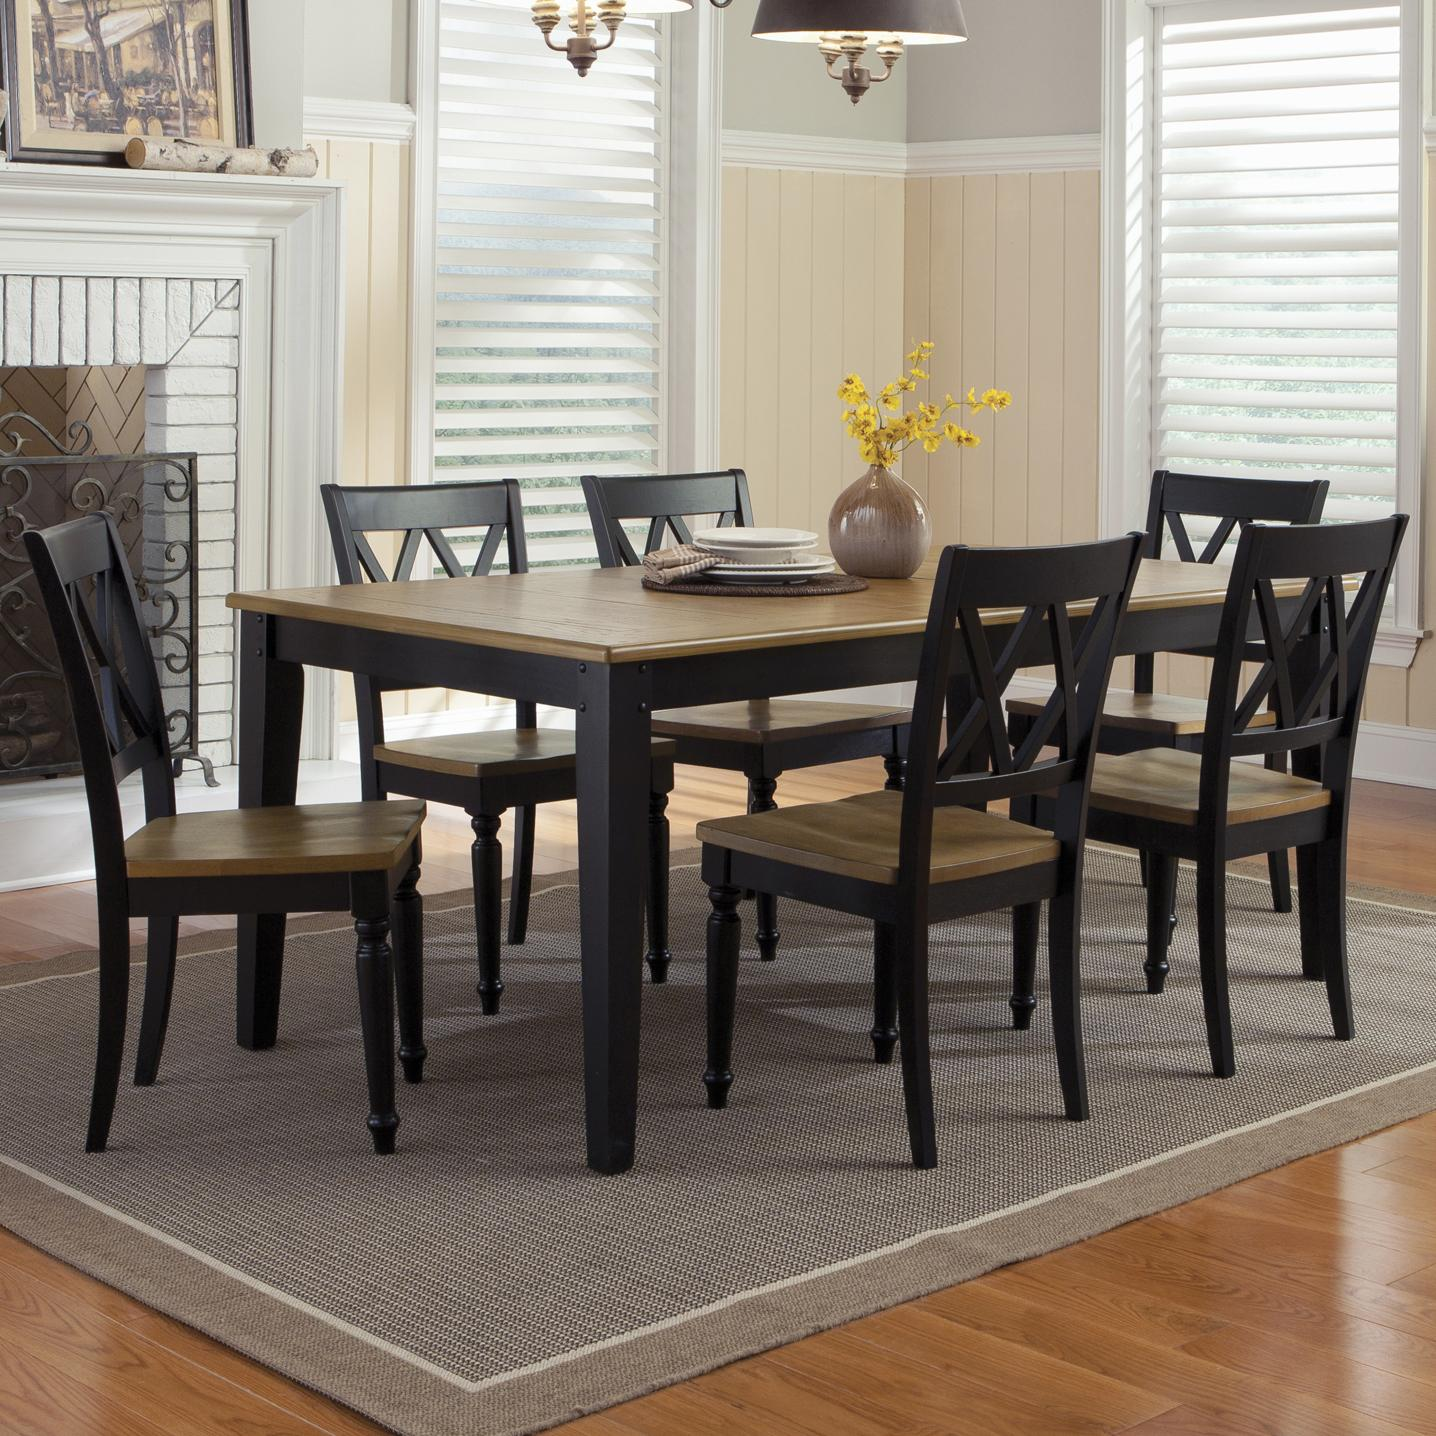 Liberty Furniture Al Fresco II 7 Piece Rectangular Table and Chairs Set - Item Number: 641-T4074+6xC3000S